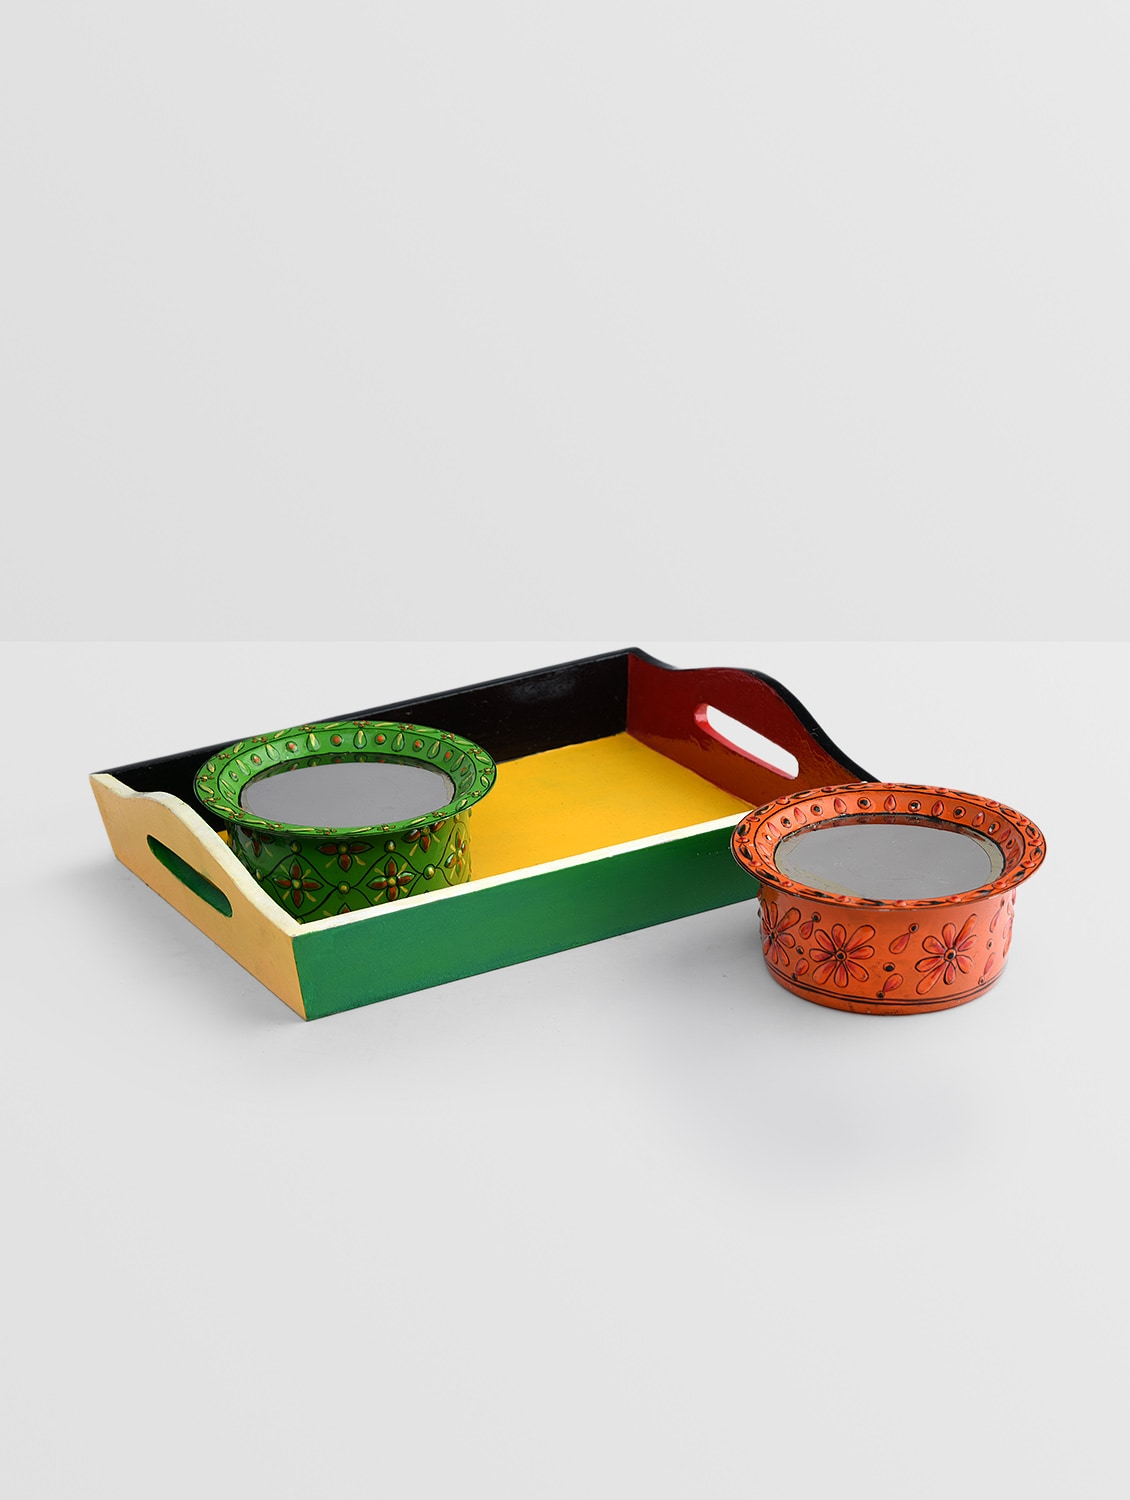 multicolored stainless steel bowl and tray set